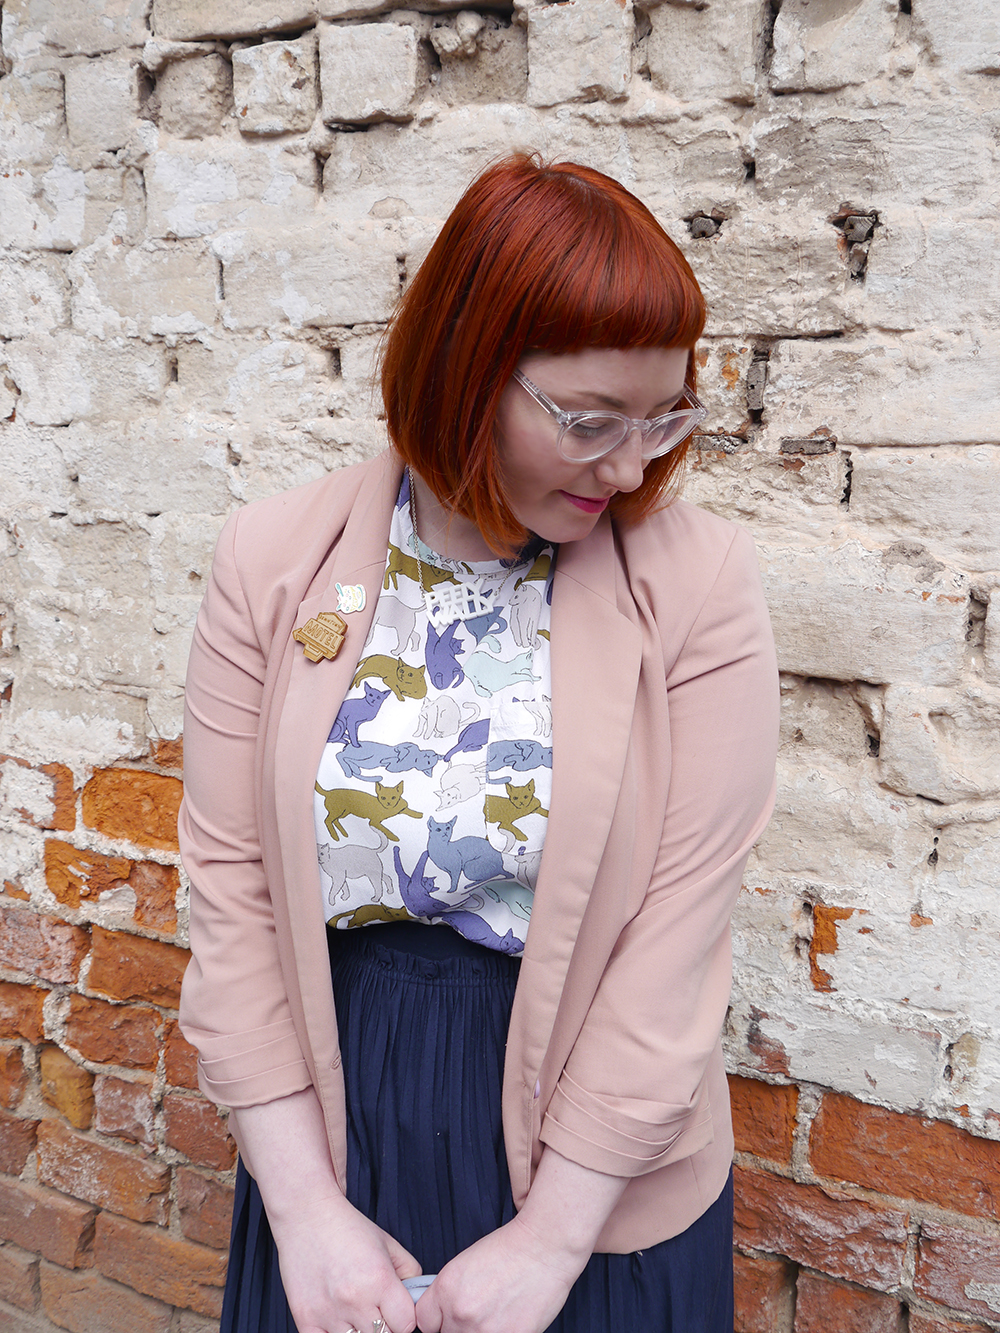 what Helen wore, red head, See with Iolla, Iolla clear glasses, clear spectacles, Scottish blogger, scottish fashion blogger, Dundee blogger, Dundee event, Dundee, cat lady, crazy cat lady outfit, cat top, H&M outfit, blue skirt, pleated navy skirt, charity shop shoes, white lace up boots, pink blazer, Lucky Dip Club pin, Kate Rowland wooden brooch, Bonnie Bling necklace, Scottish slang necklace, peely wally necklace, Scottish street style, brick wall background, cat print top